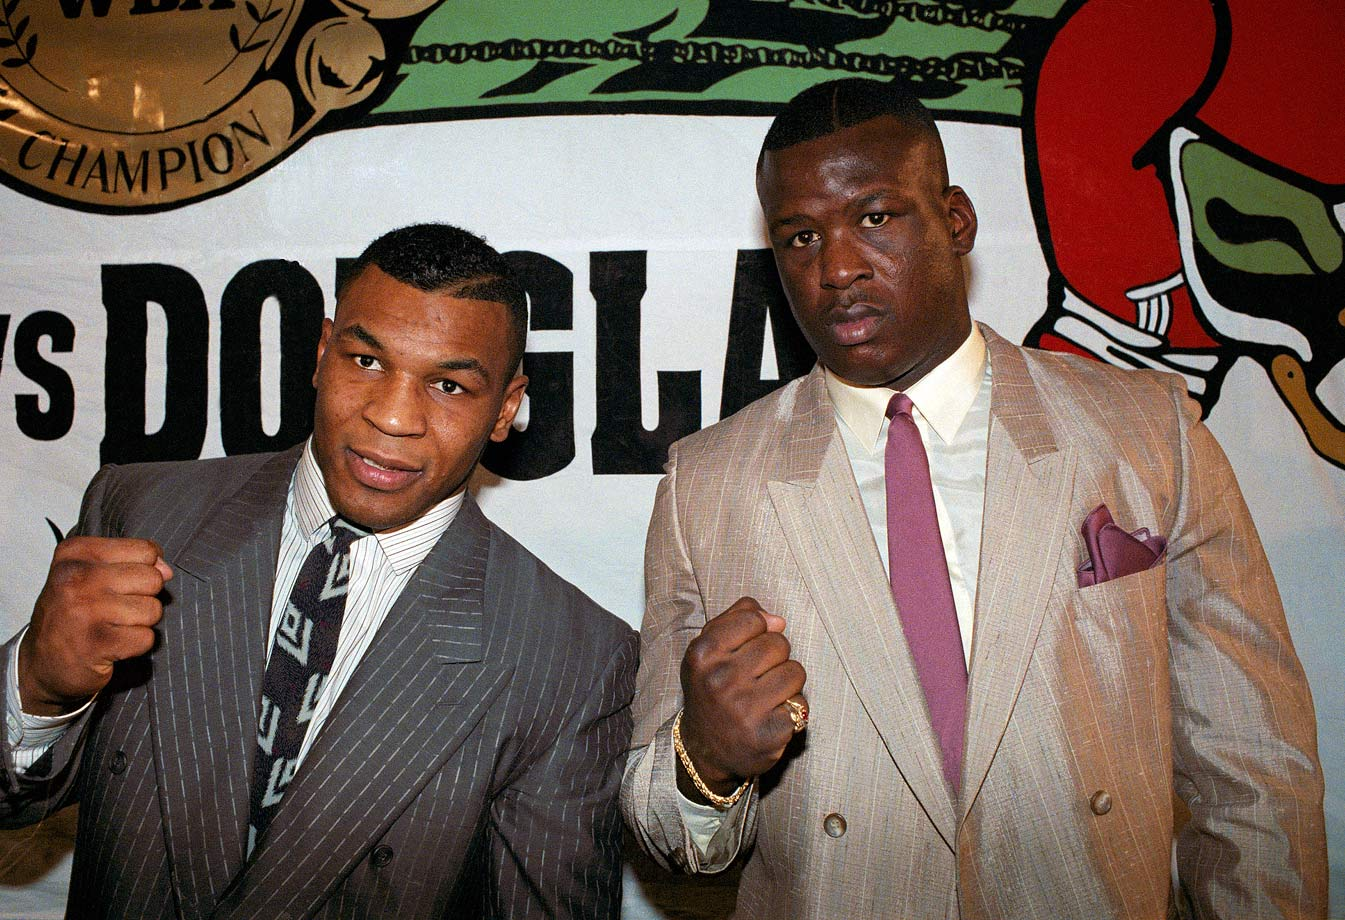 "Mike Tyson was just 23 and undefeated in 37 fights when he signed to defend his unified heavyweight title against lightly regarded James ""Buster"" Douglas. Even as the two posed at this press conference announcing their bout, most boxing fans were already looking forward to a hoped-for Tyson match-up with Evander Holyfield."